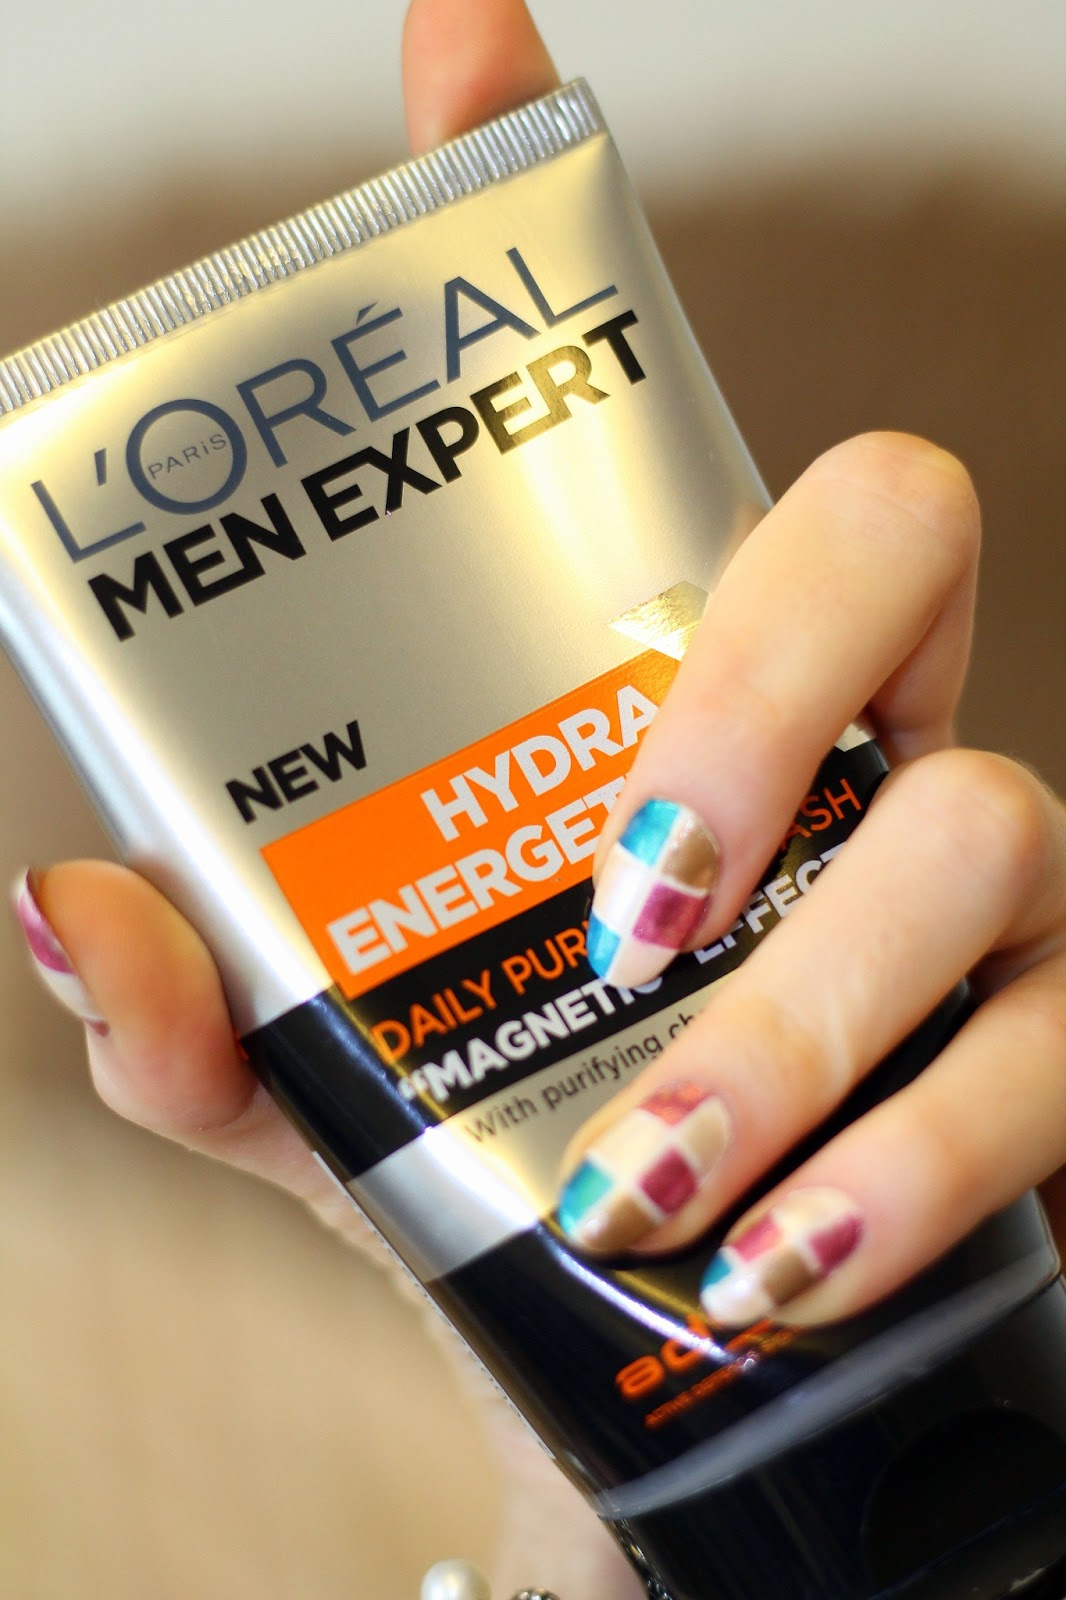 Loreal Men Expert Extreme Charcoal Wash Heroine In Heels White Foam Face